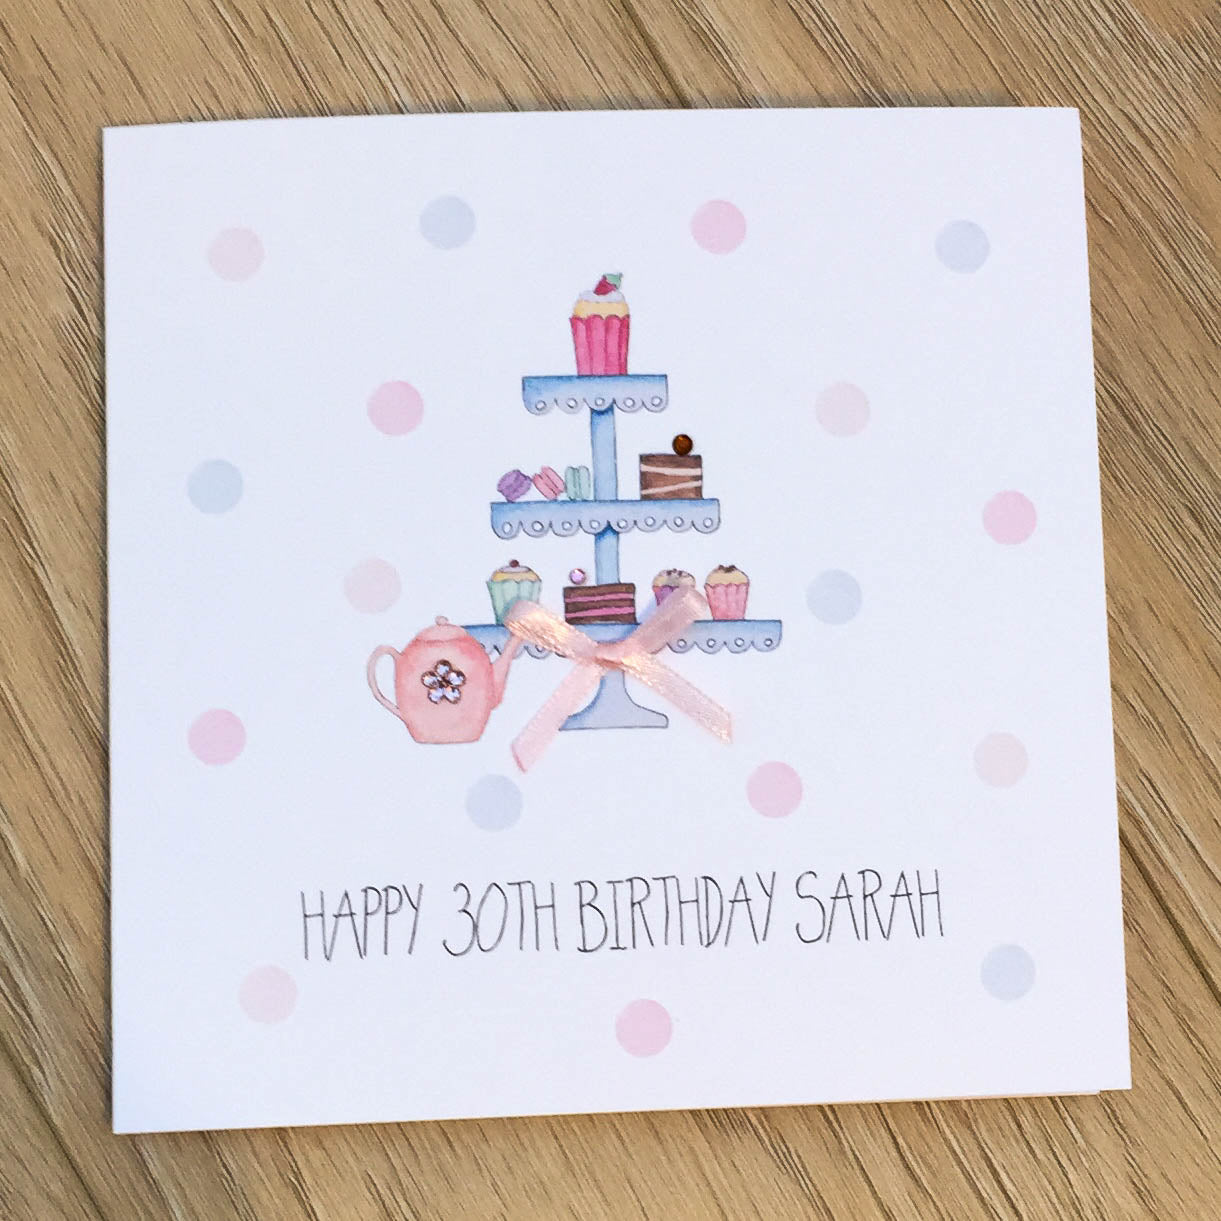 Personalised Handmade Birthday Card – Afternoon Tea and Cake